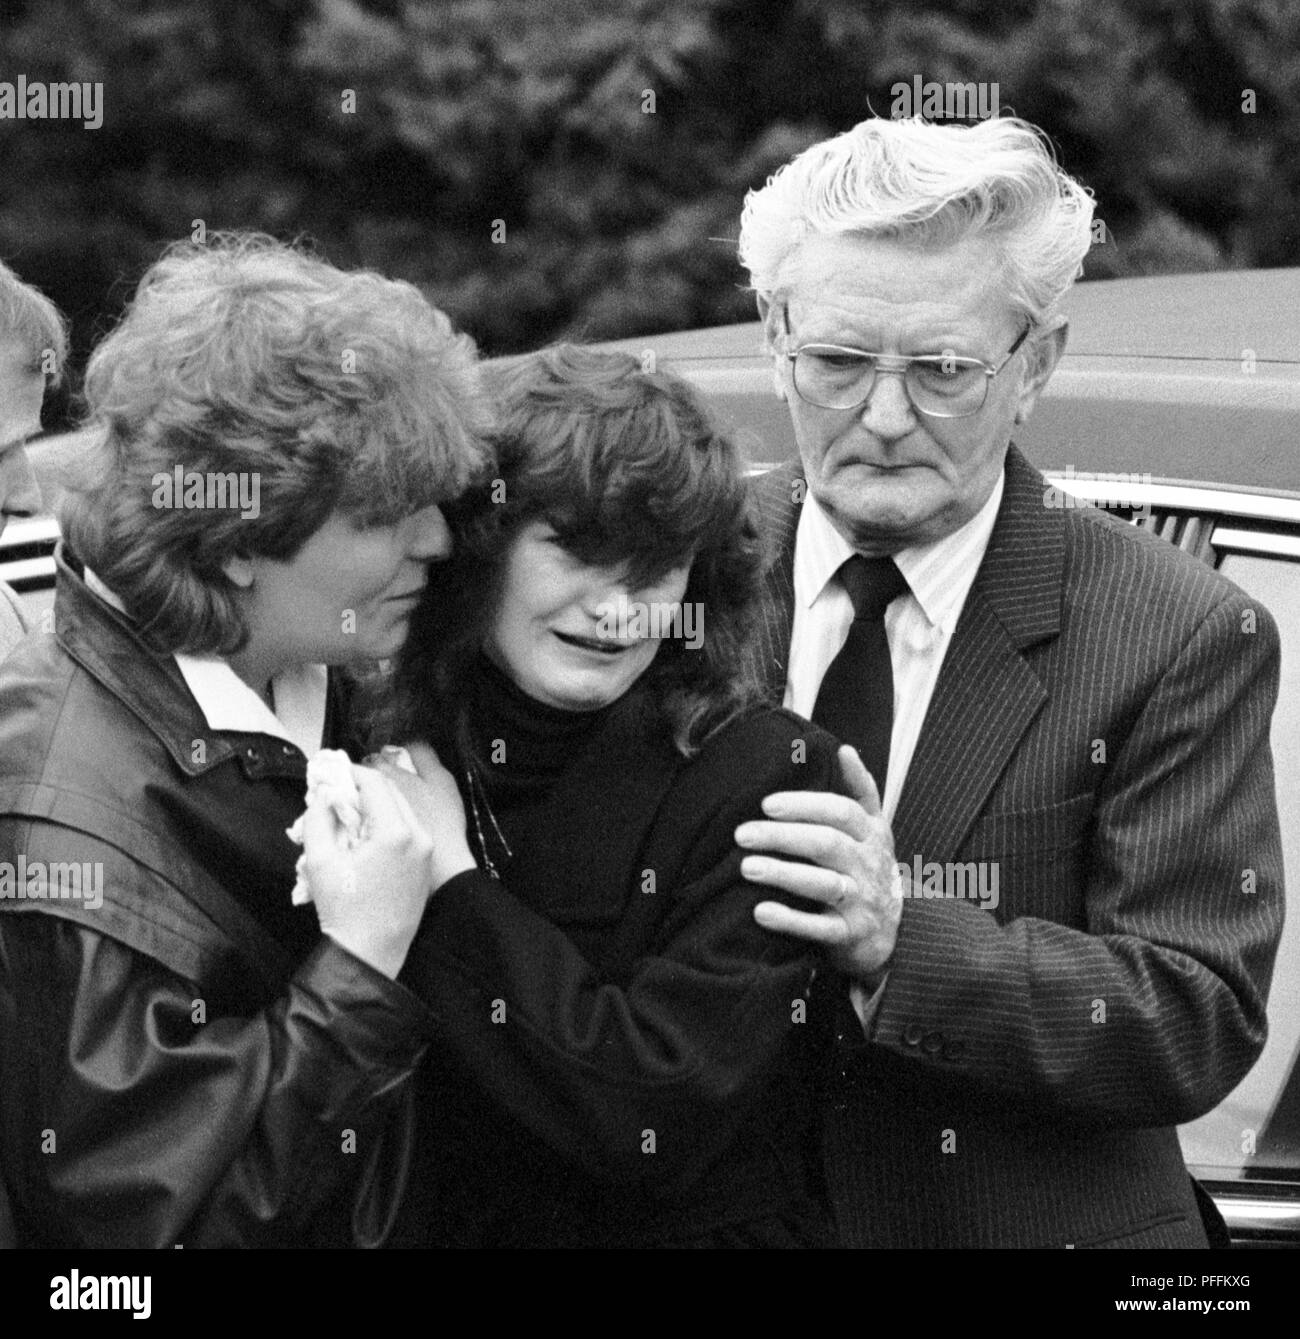 Grief-stricken mourners at the funeral of murdered Brighton schoolgirls, Nicola Fellows and Karen Hadaway, at the church of St Andrews on the Moulsecoomb Estate where the girls lived. - Stock Image